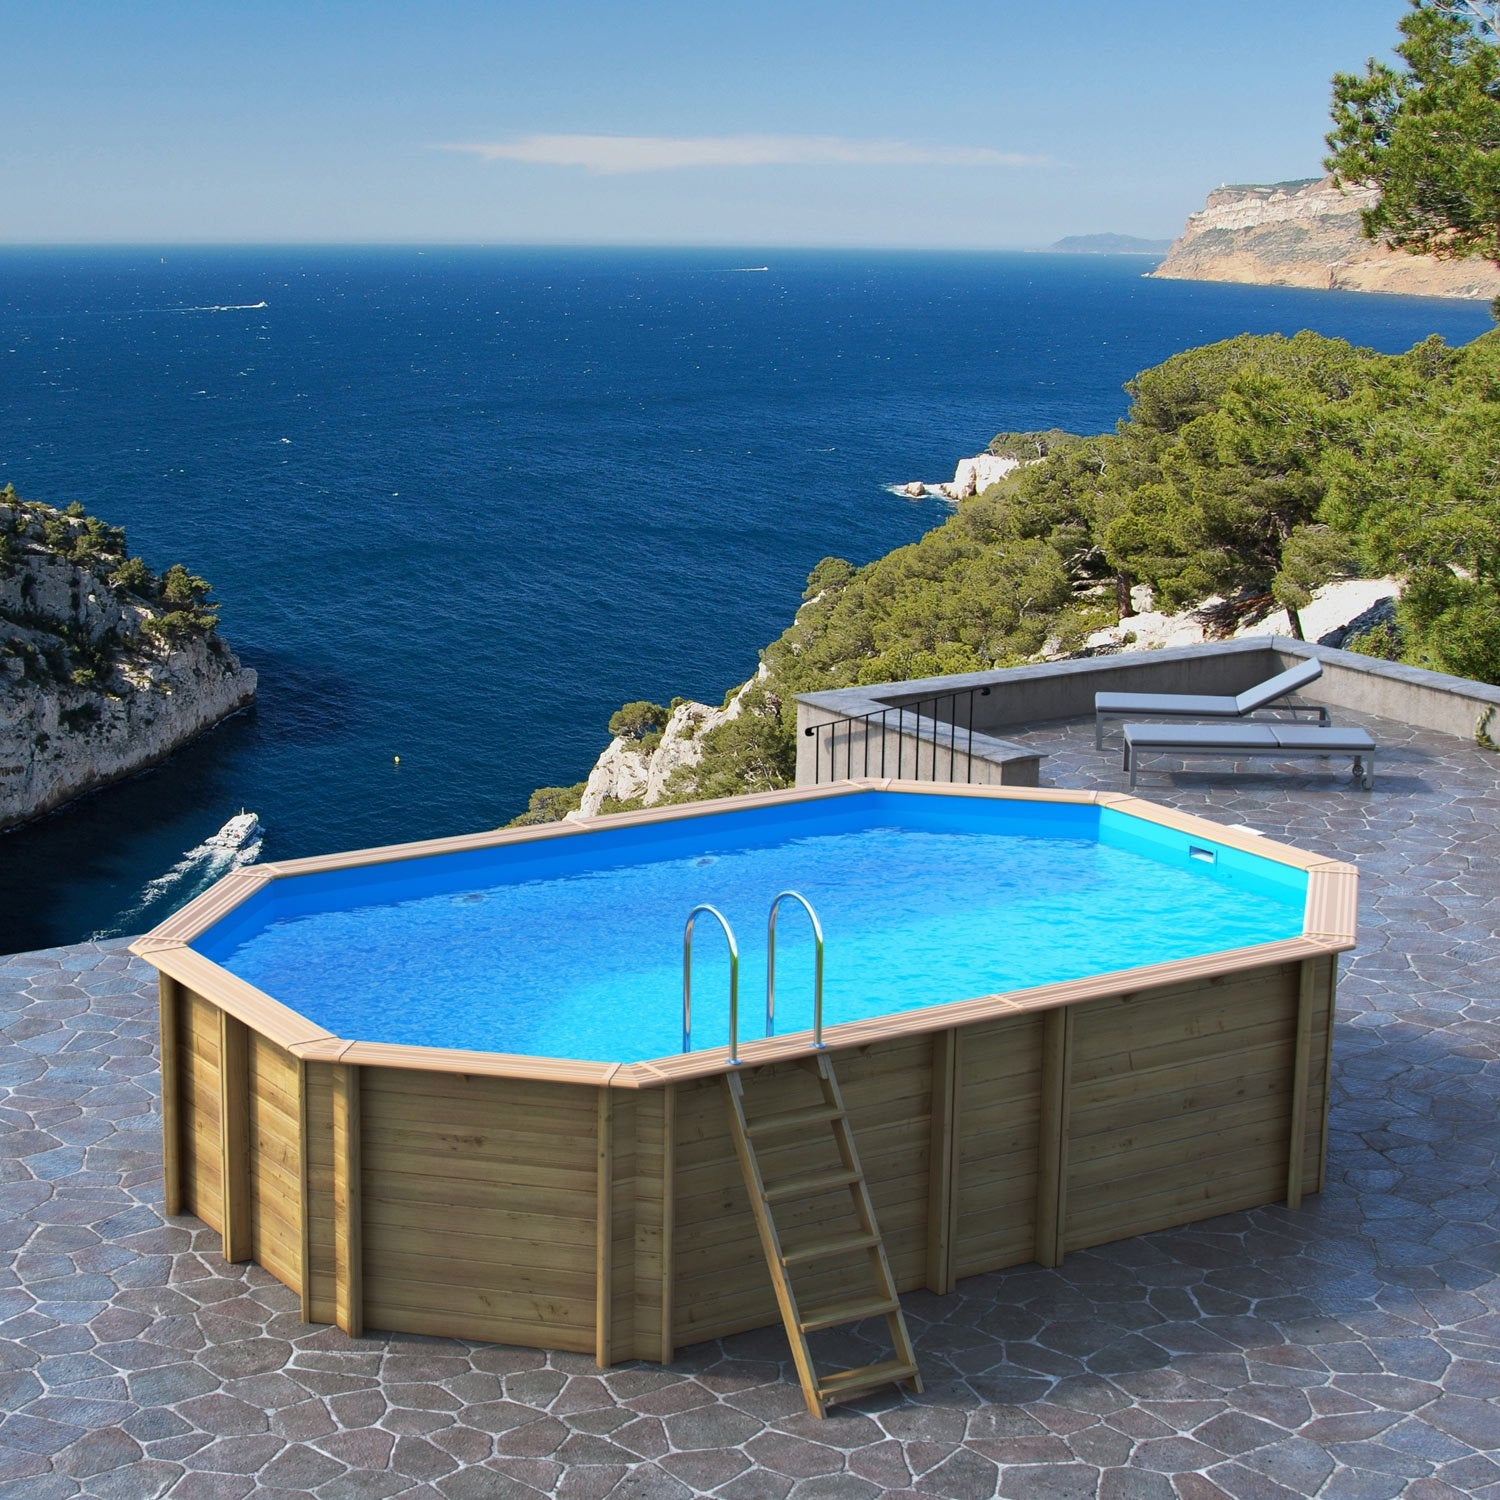 Piscine hors sol bois odyssea proswell by procopi l 6 4 x for Piscine hors sol dimension